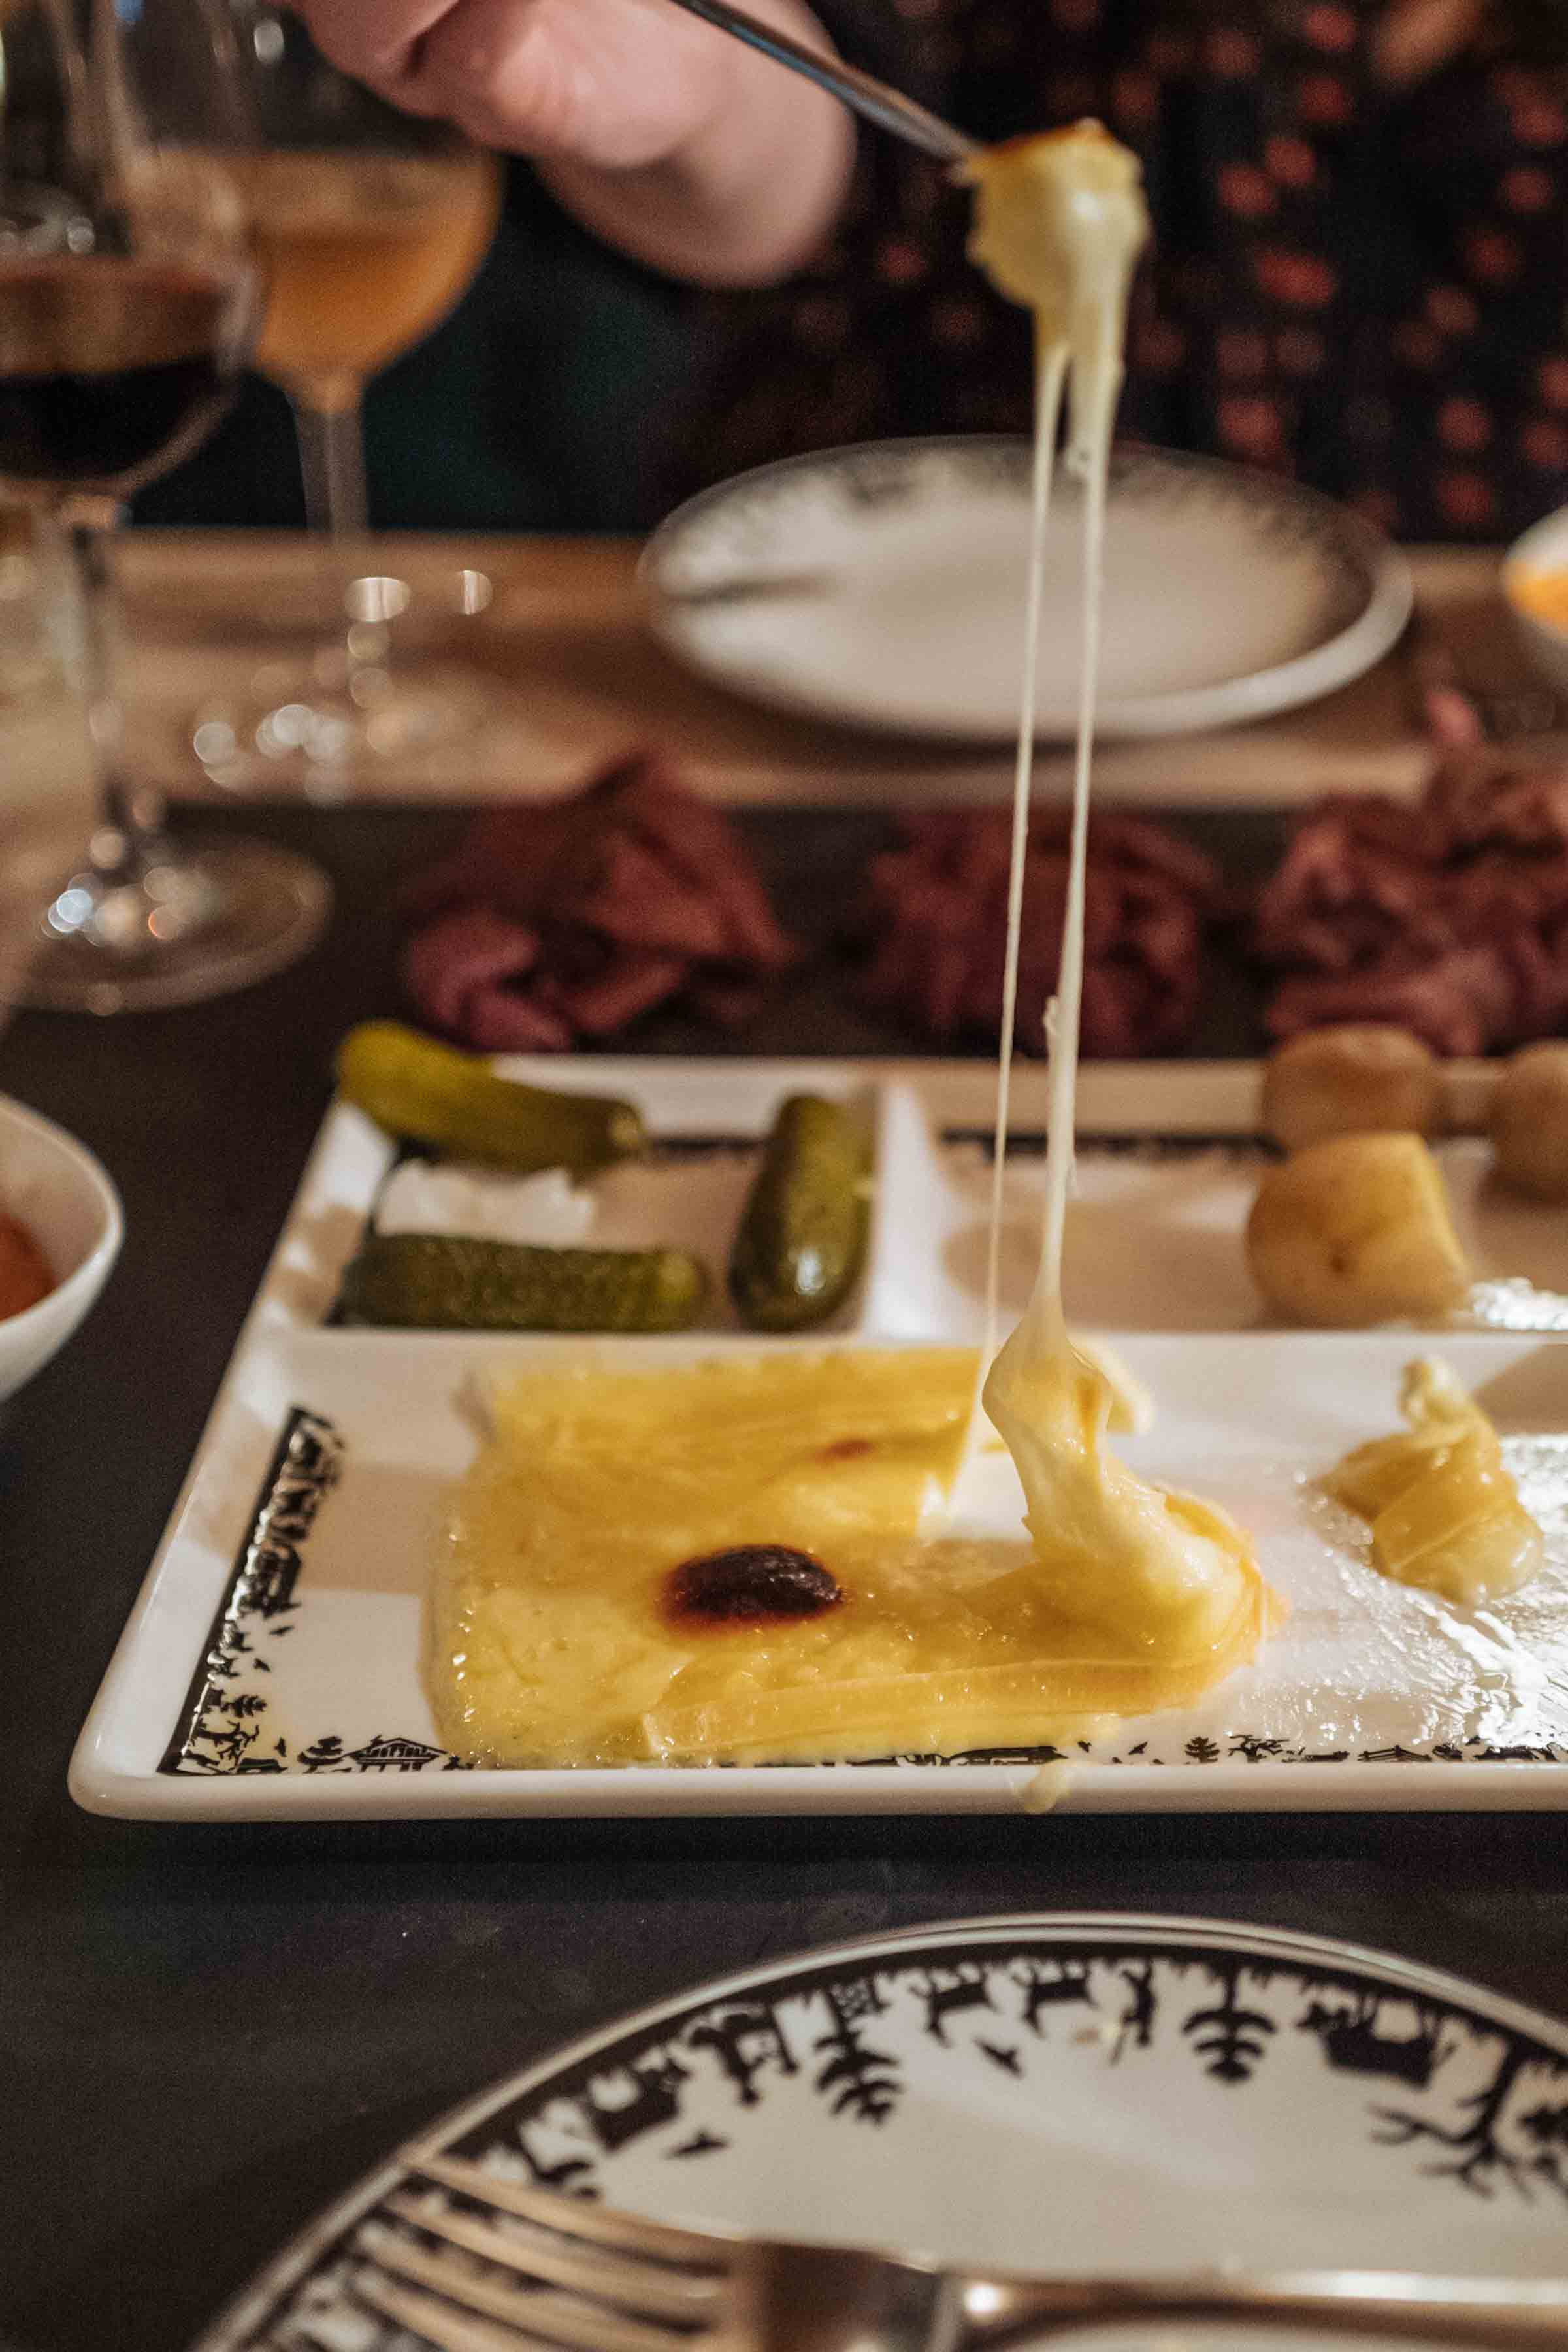 Stretch that cheese! Here's where to go for the best raclette dinner in Klosters. Use our guide to know where to go and the best restaurants to find that and fondue with our guide to Klosters. | thetastesf.com #travel #switzerland #winter #food #cheese